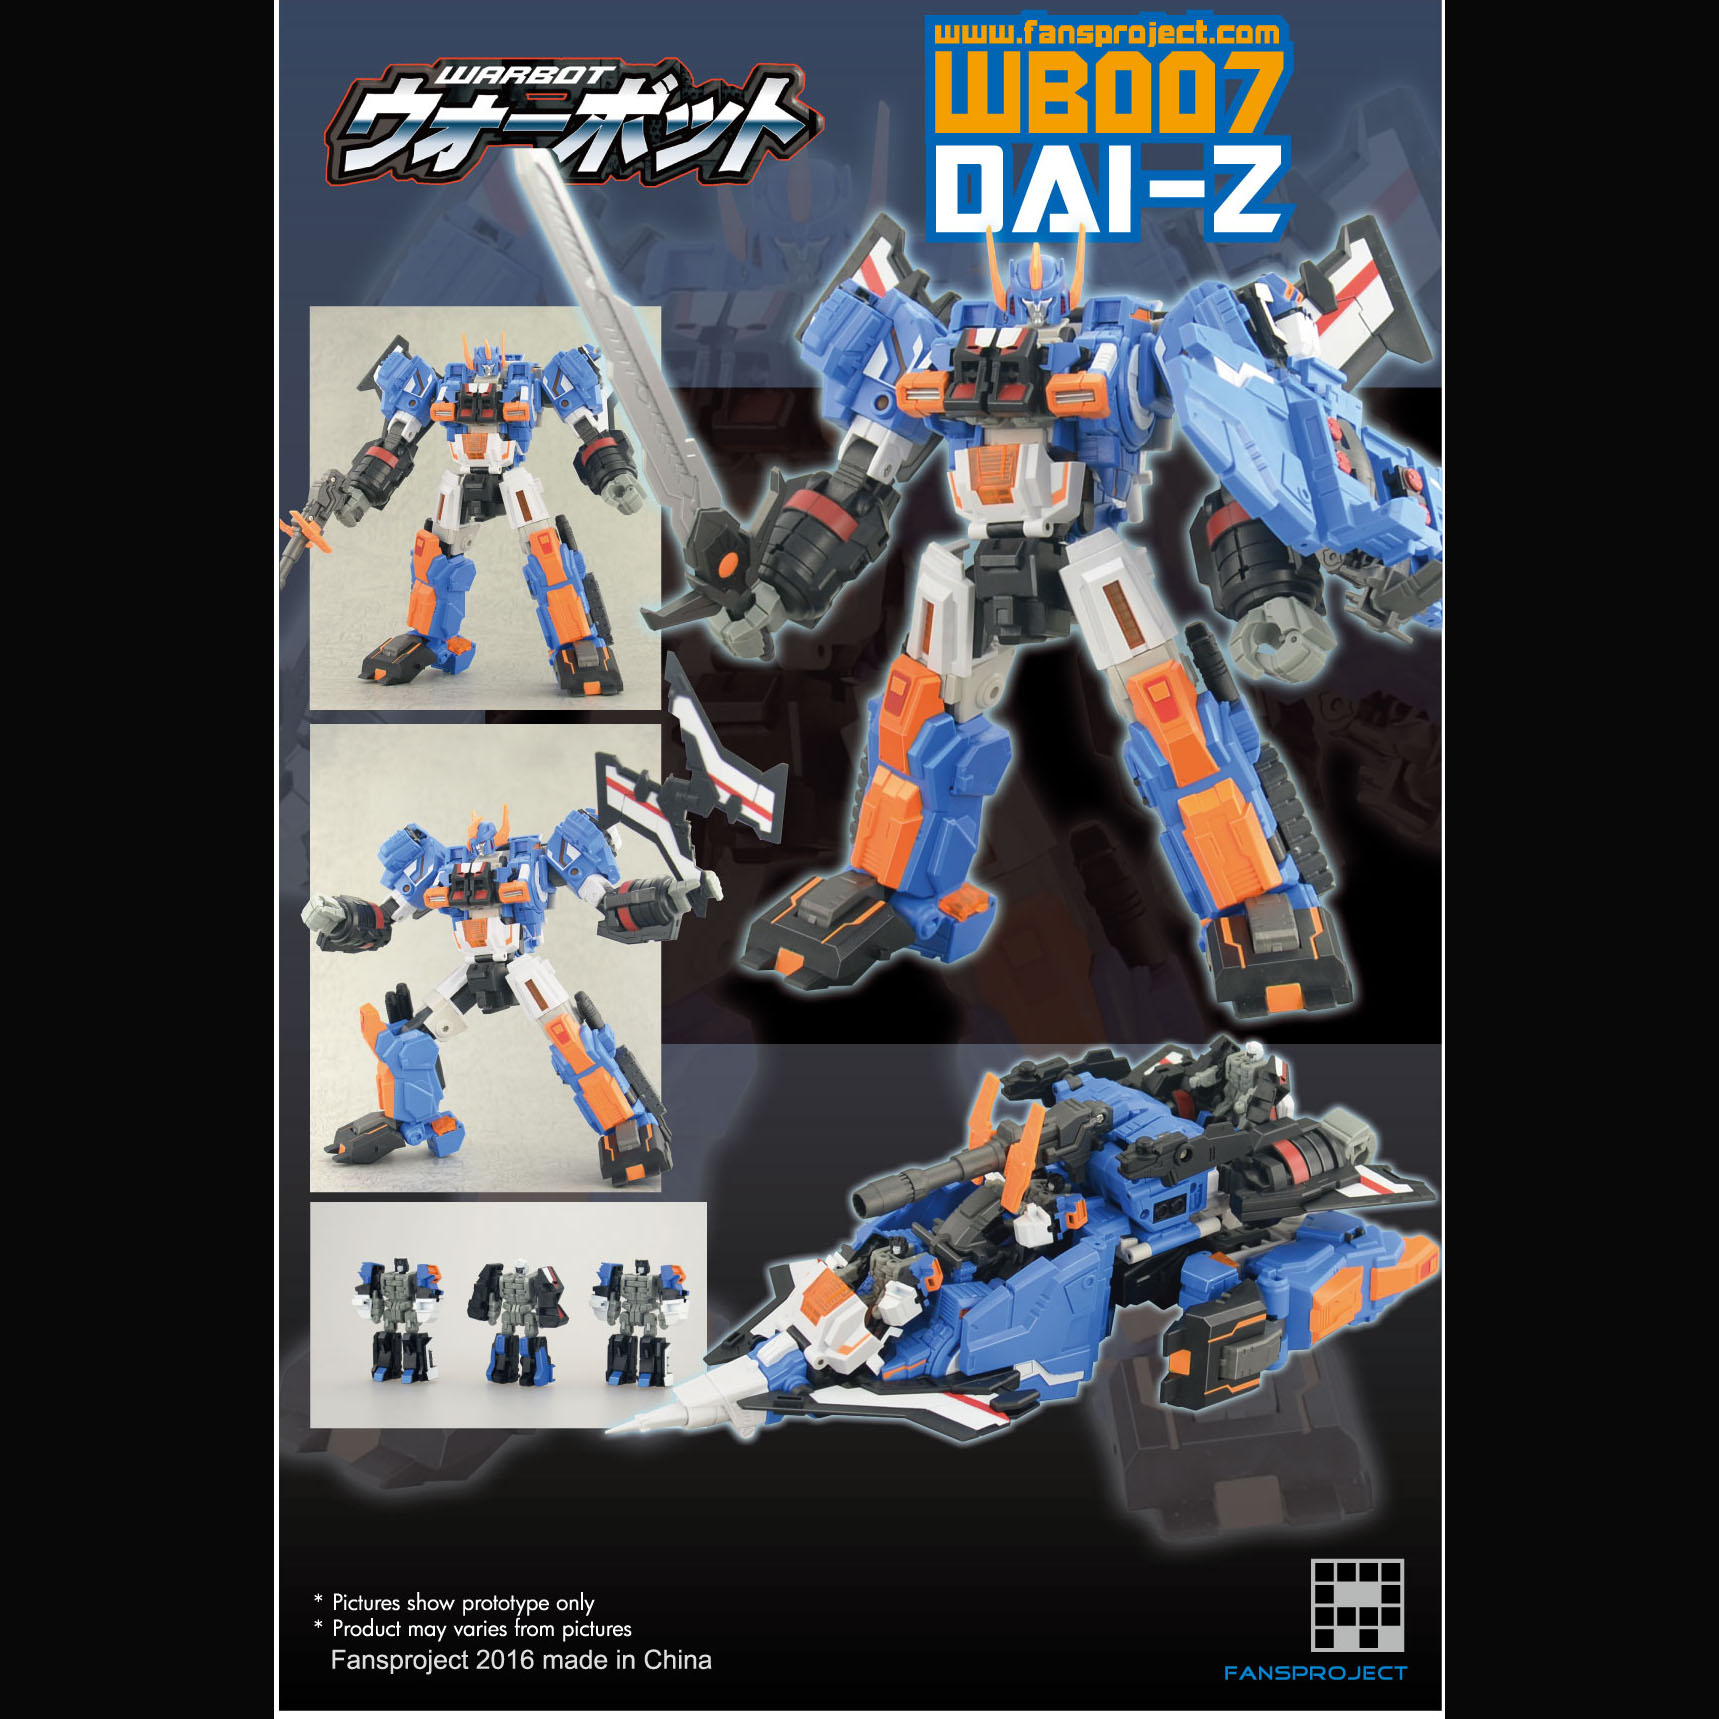 FANSPROJECT - WB 007 DAI-Z